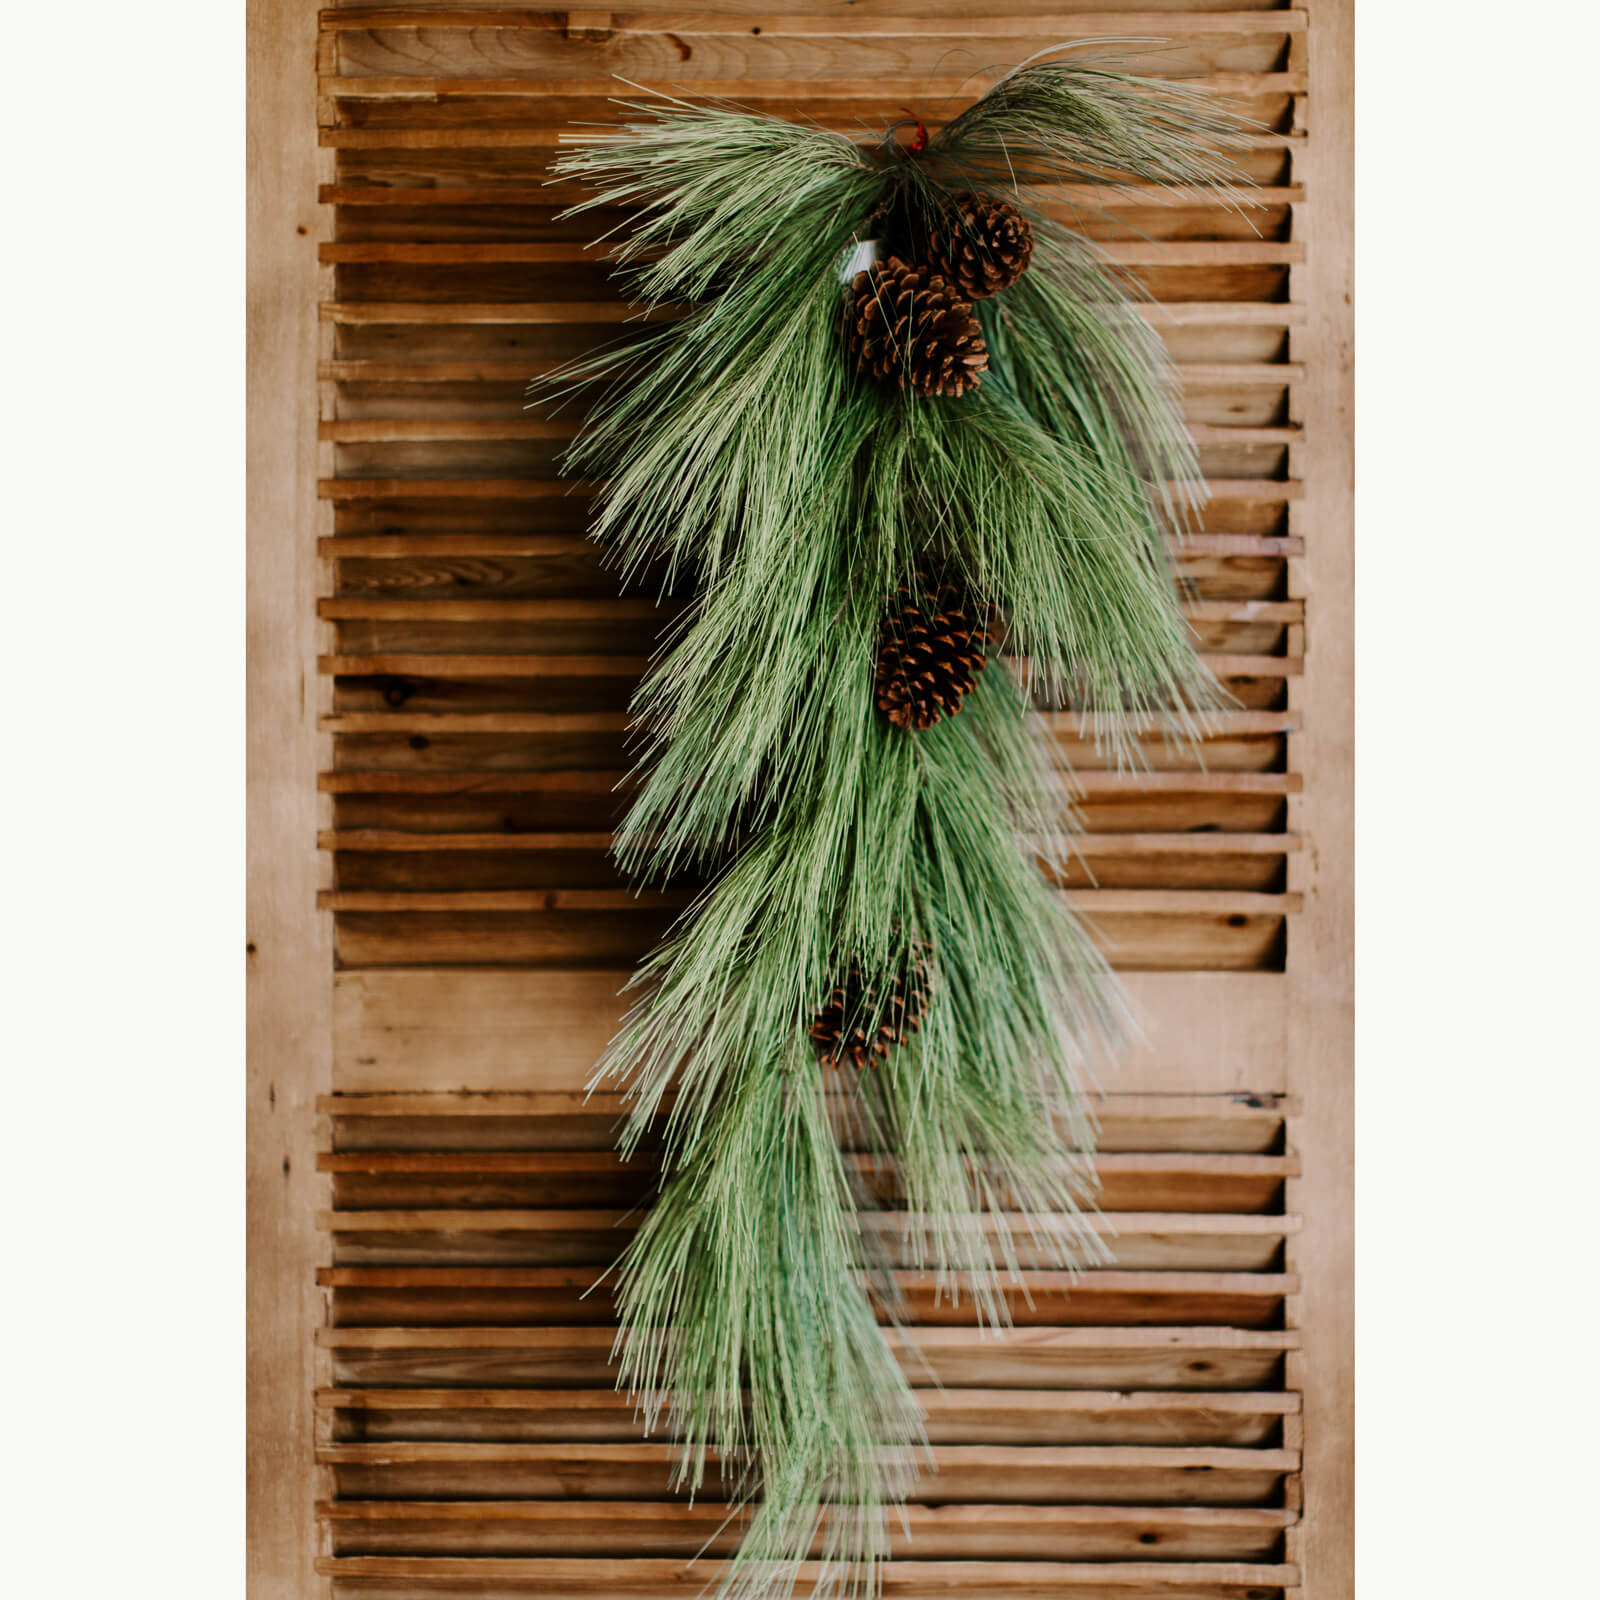 Realistic 36 inch long faux pine swag with long needles and pinecones hung on a door